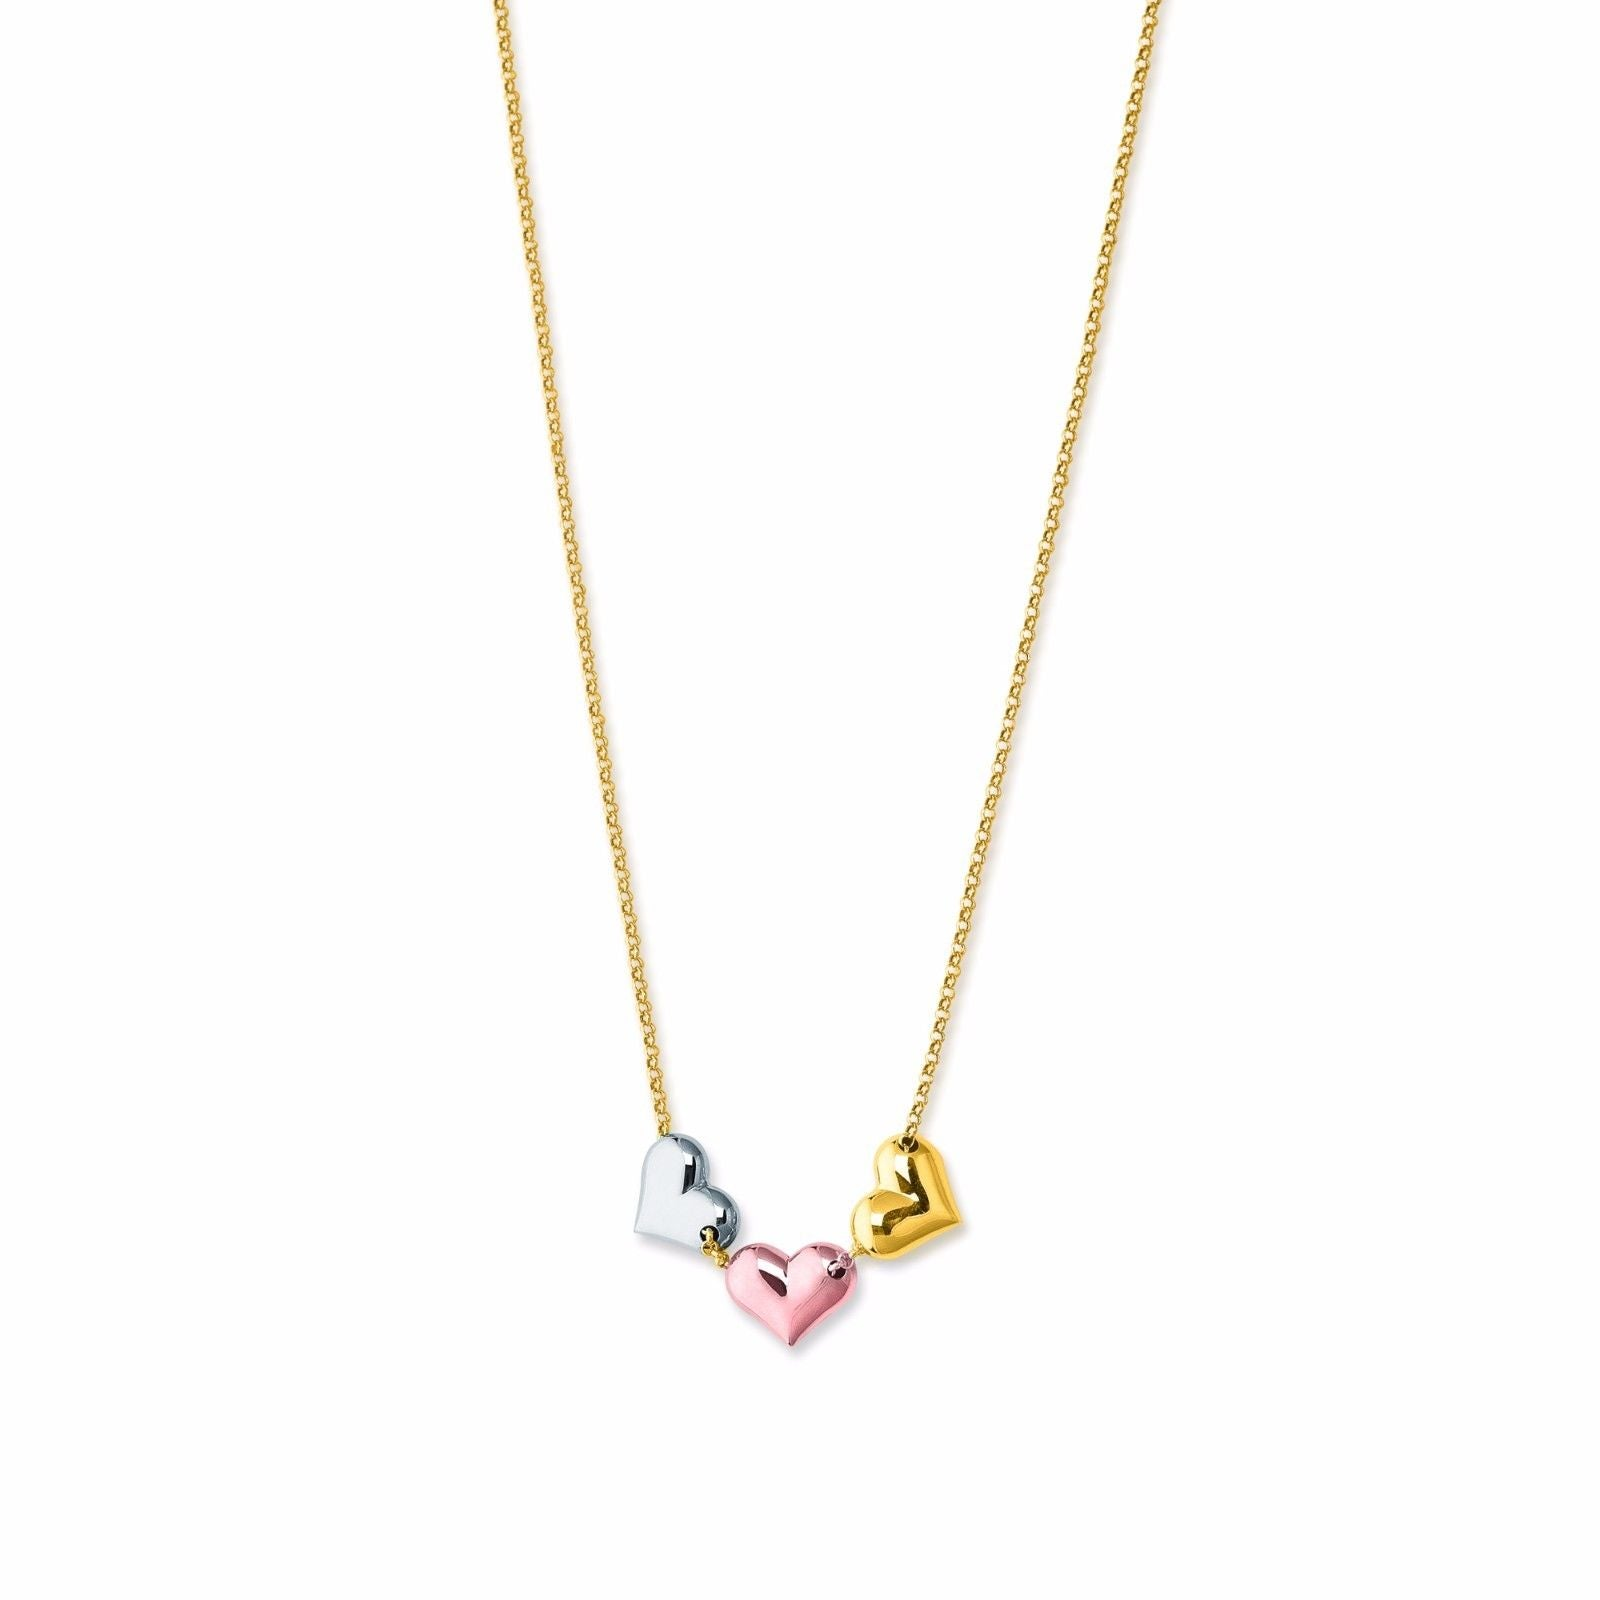 Solid 14K Tri-Color Gold Round Heart Charm Love Pendant Necklace